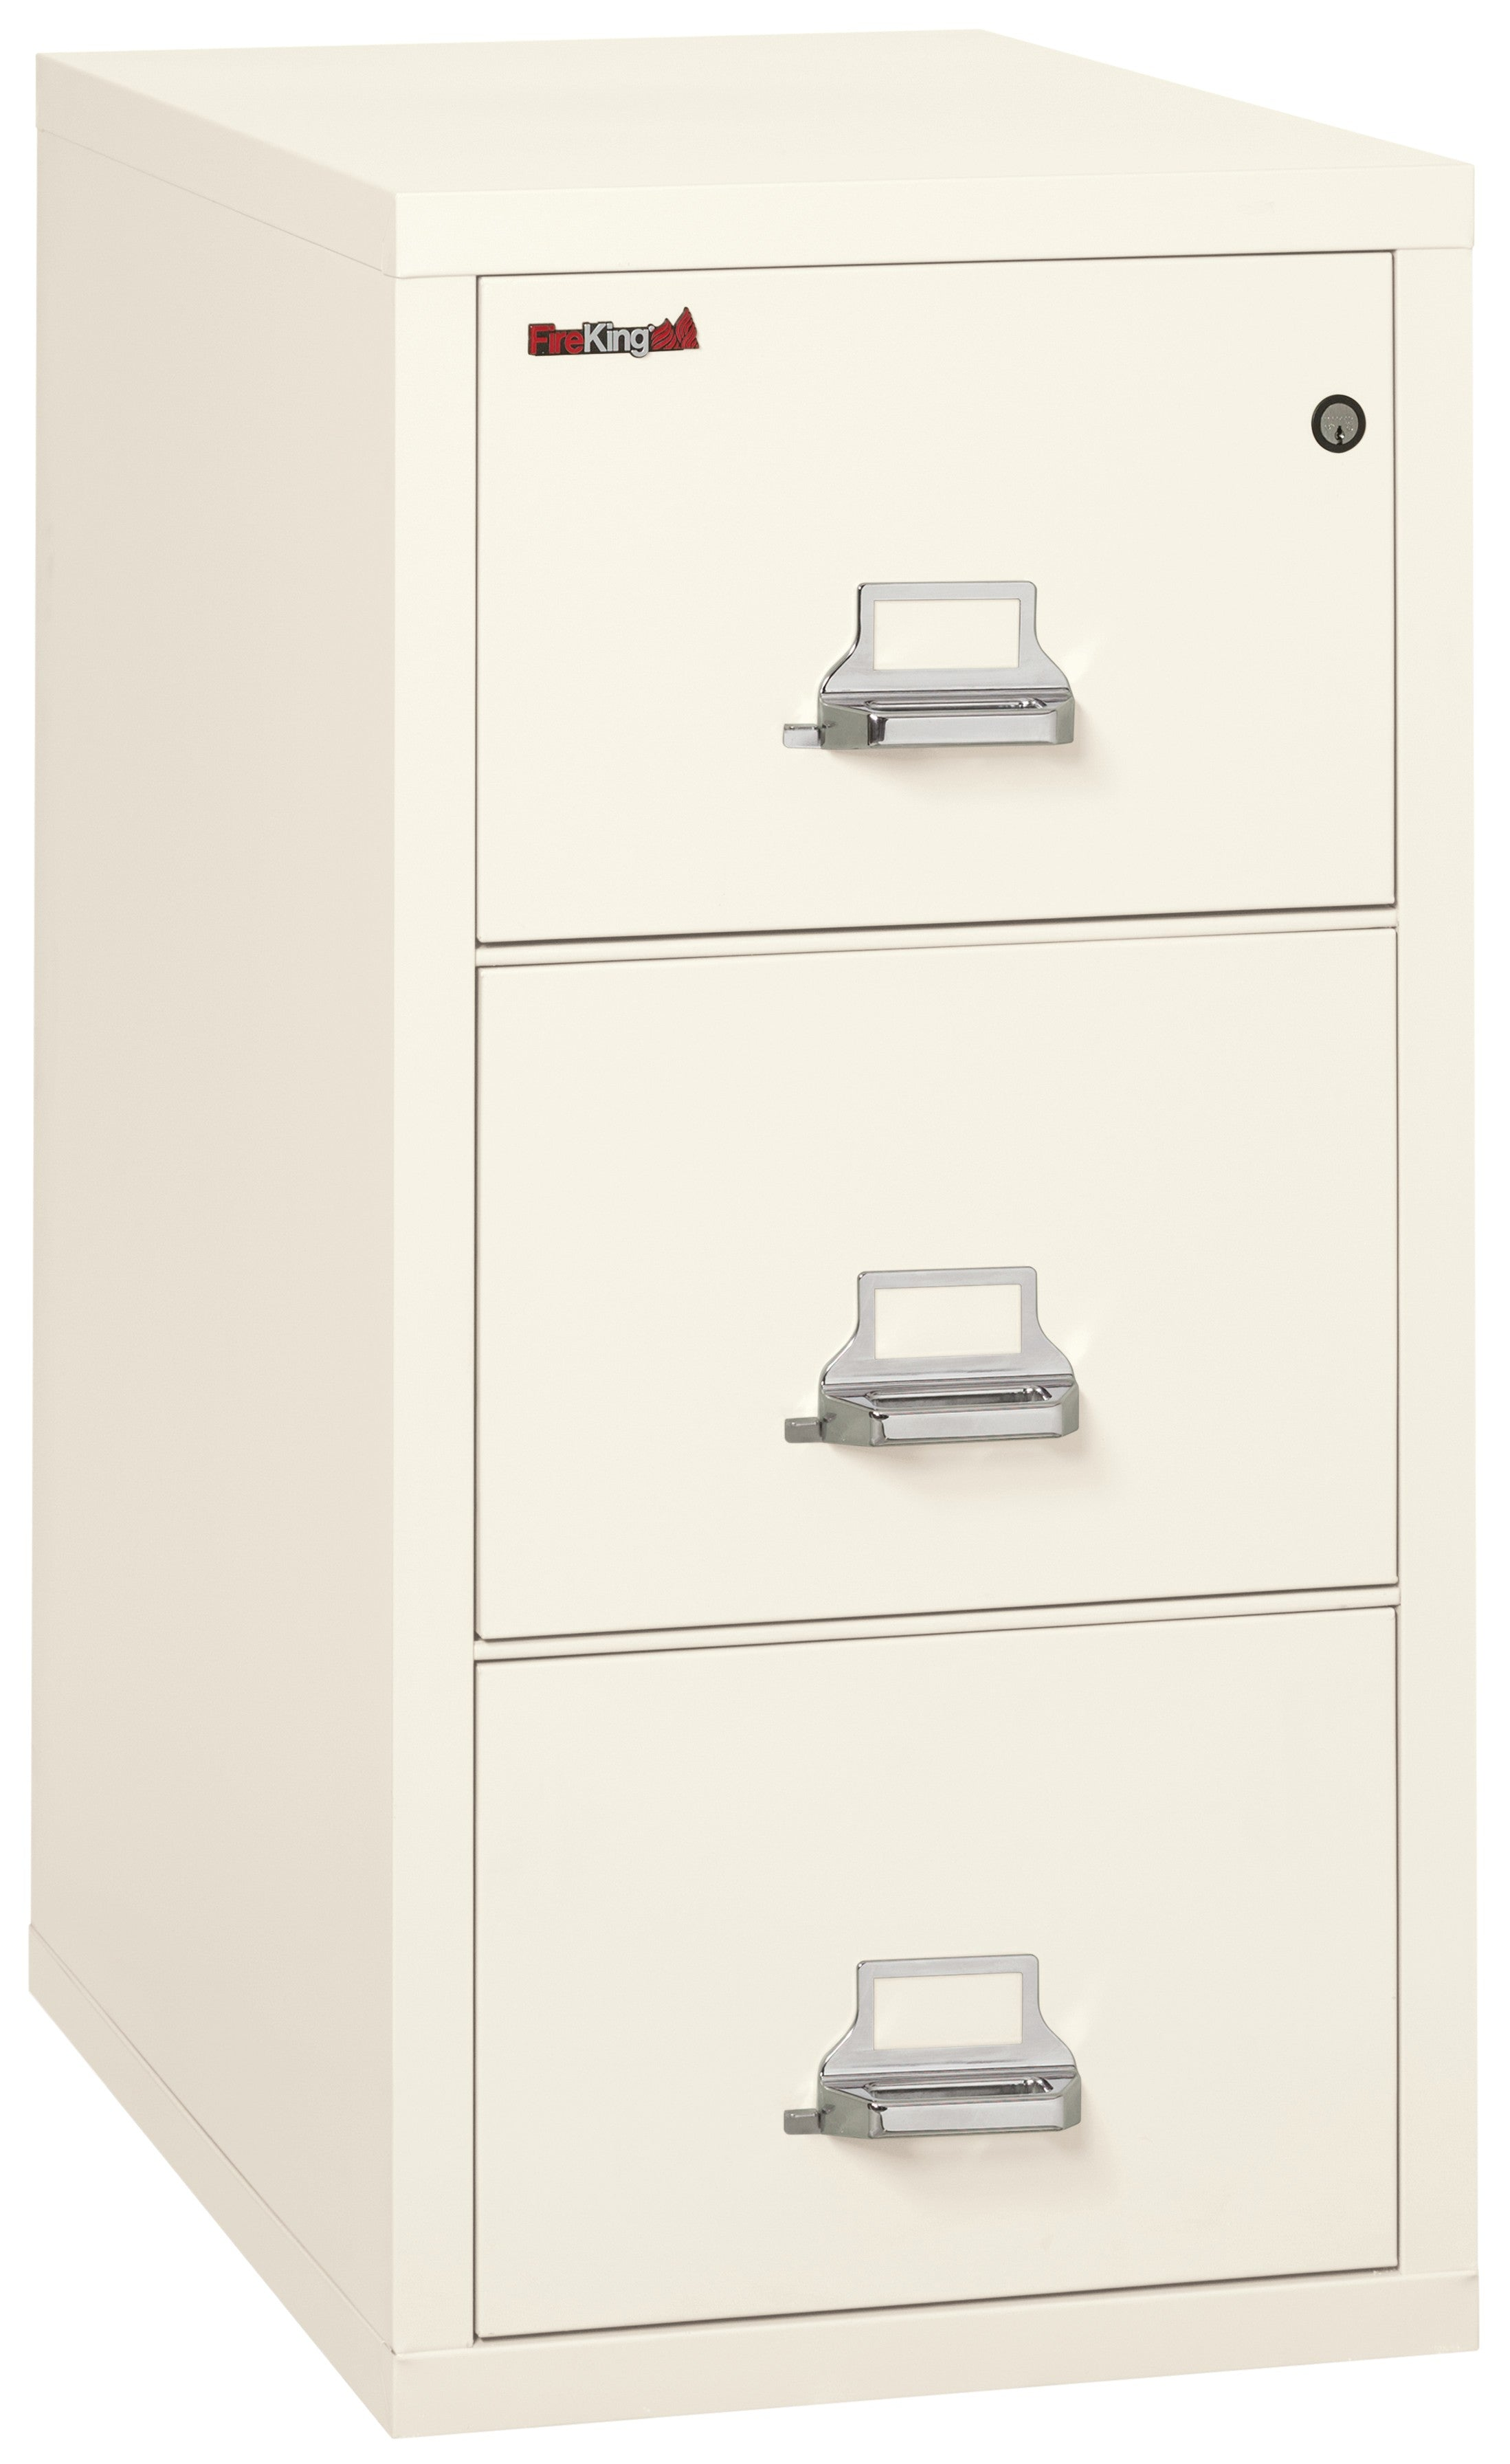 "Fireking 3 Drawer Legal 31"" D Classic Vertical File Cabinet"